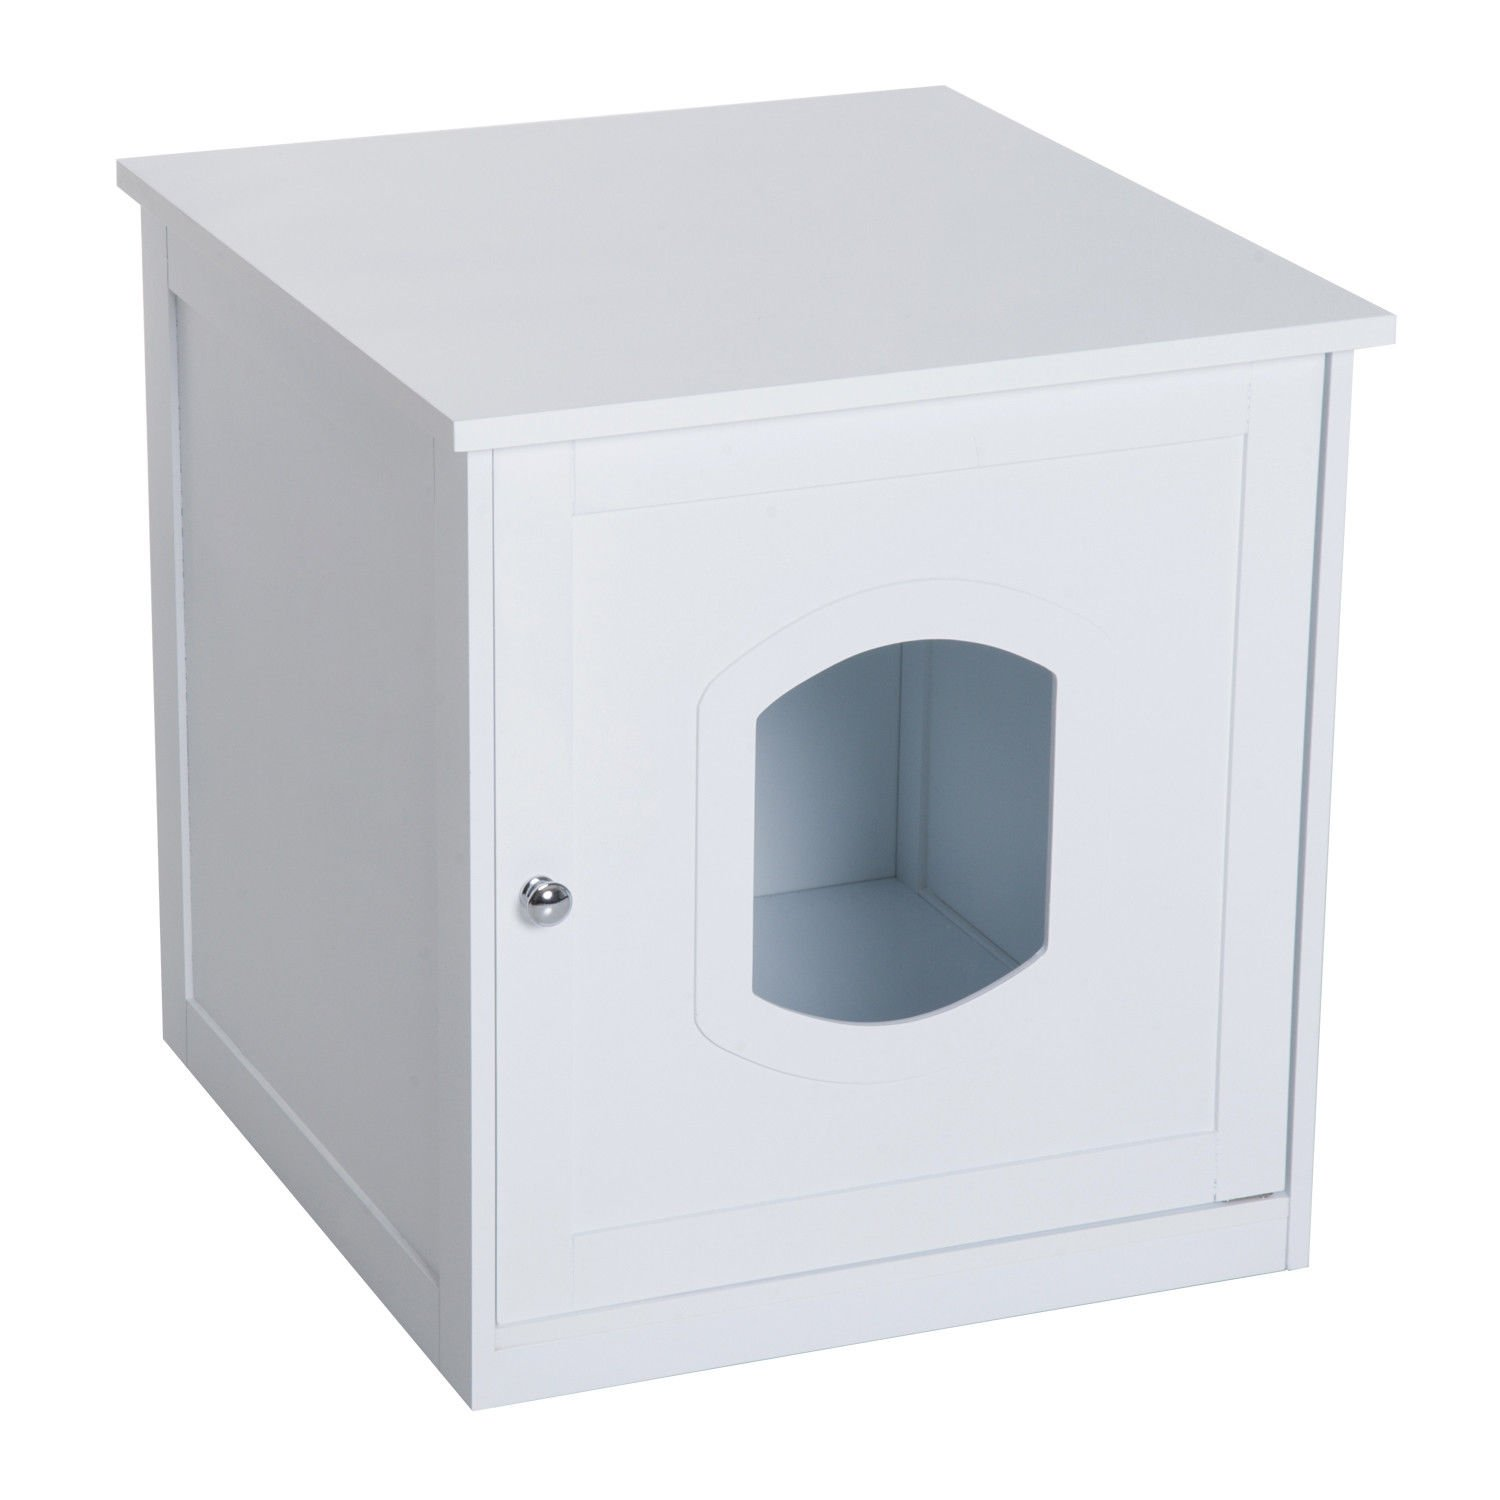 PawHut Covered Cat Litter Box Hideaway Pet House End Table White